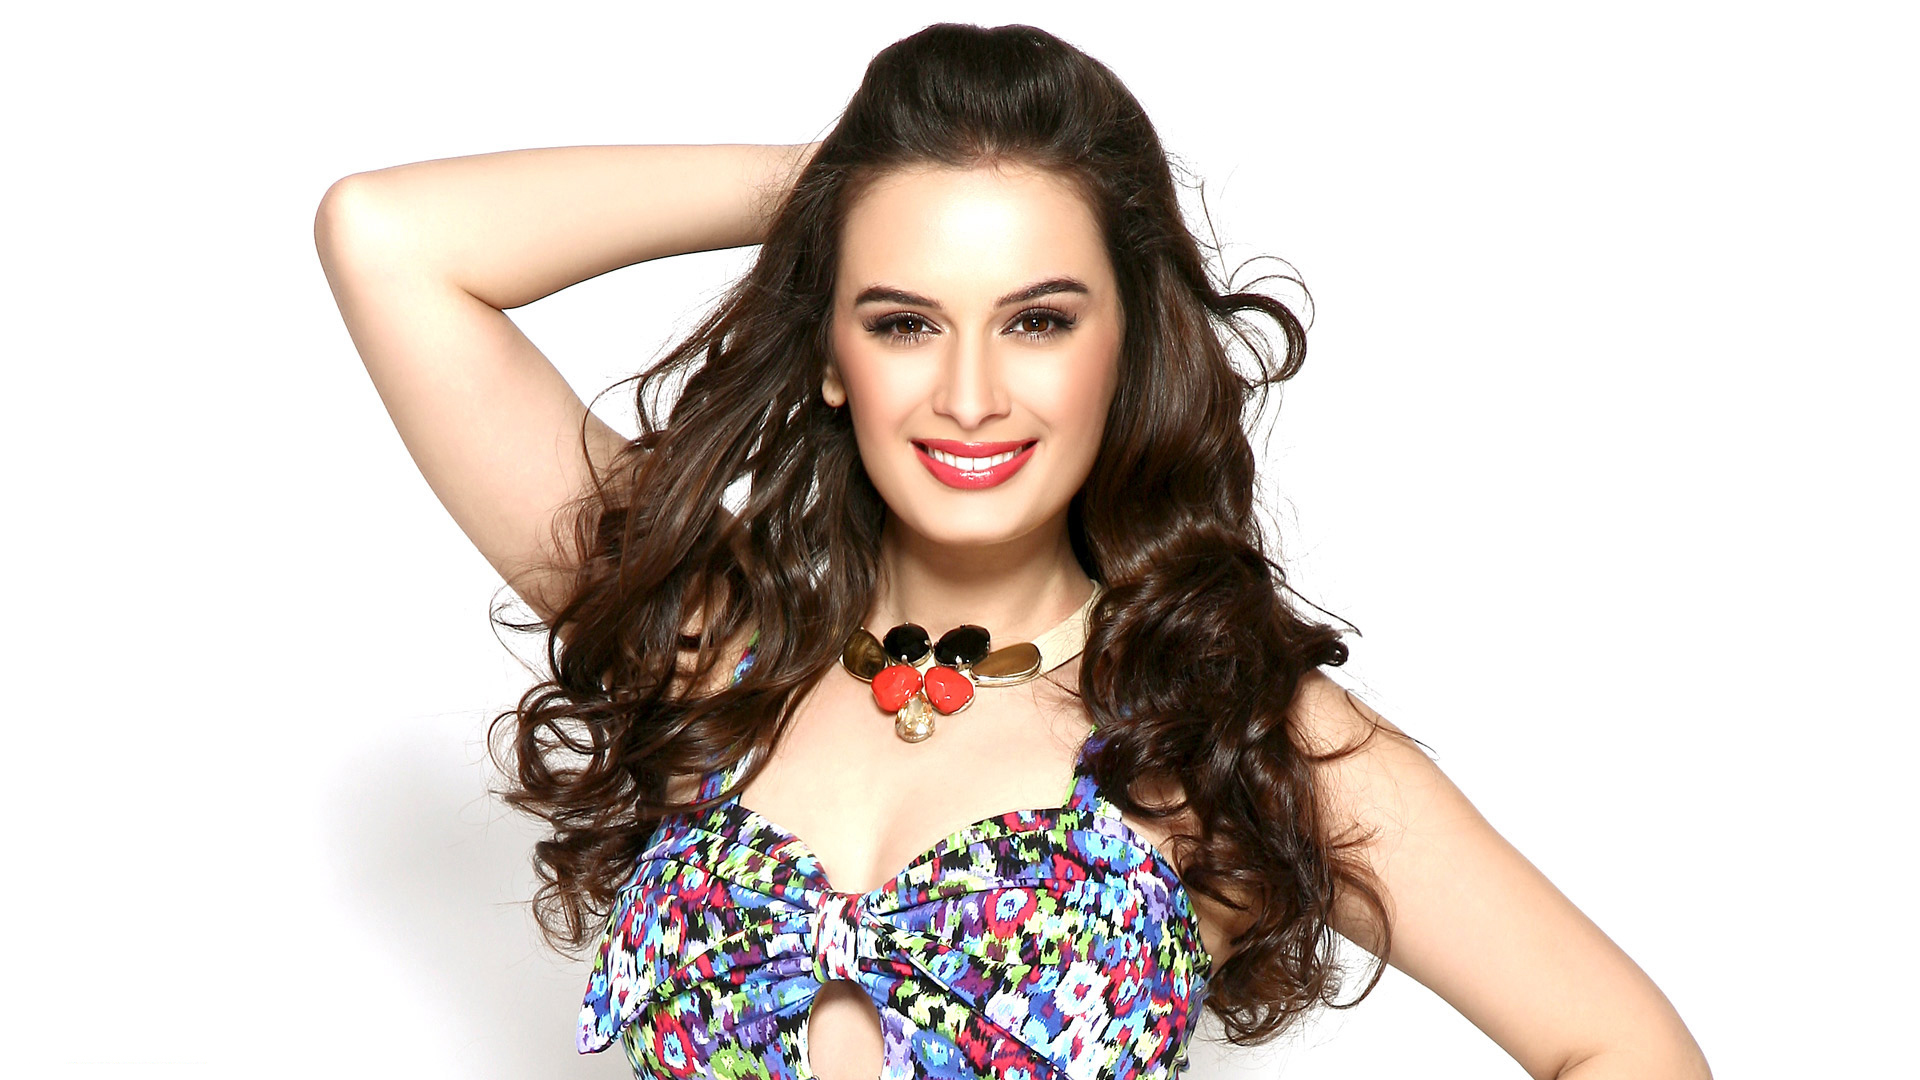 Stunning Evelyn Sharma Beautiful Pictures Mobile Desktop Free Background Hd